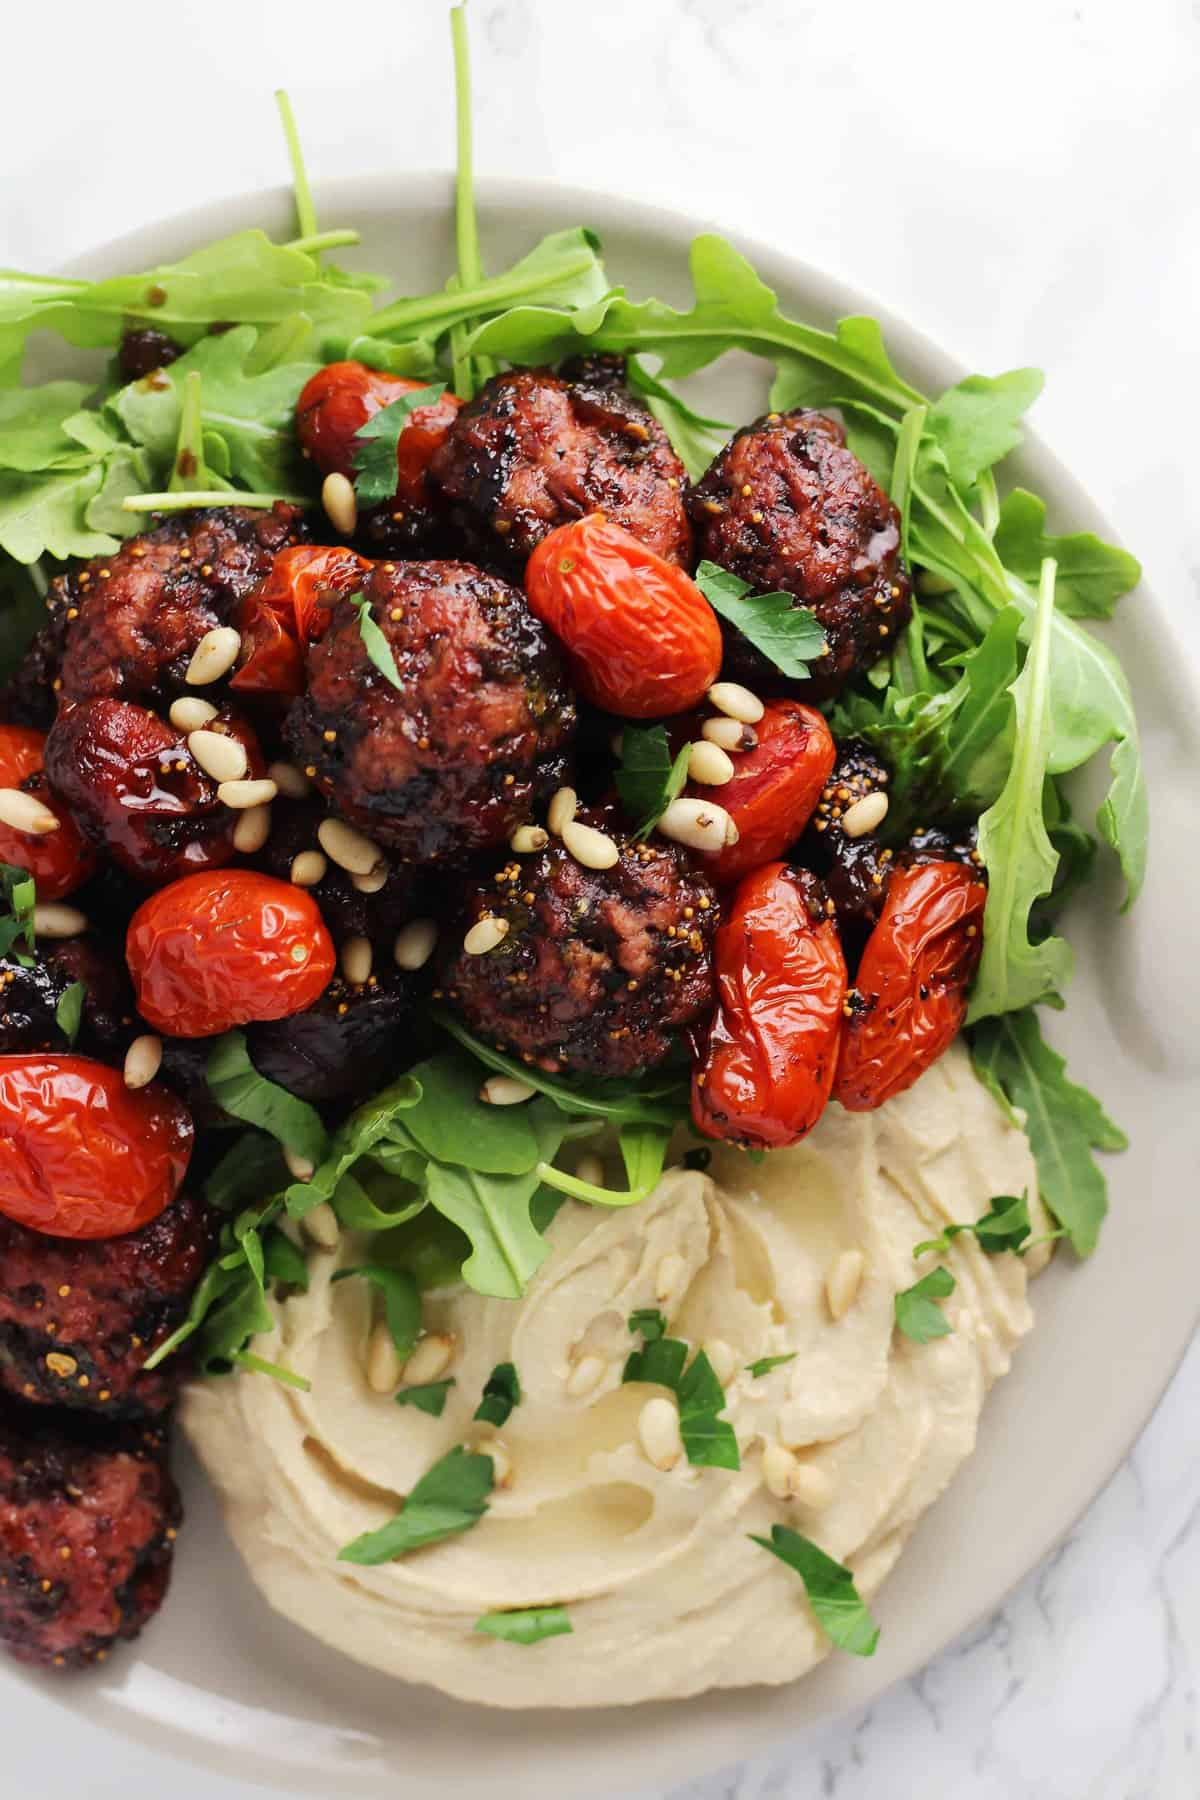 Balsamic Fig Glazed One-Skillet Meatballs